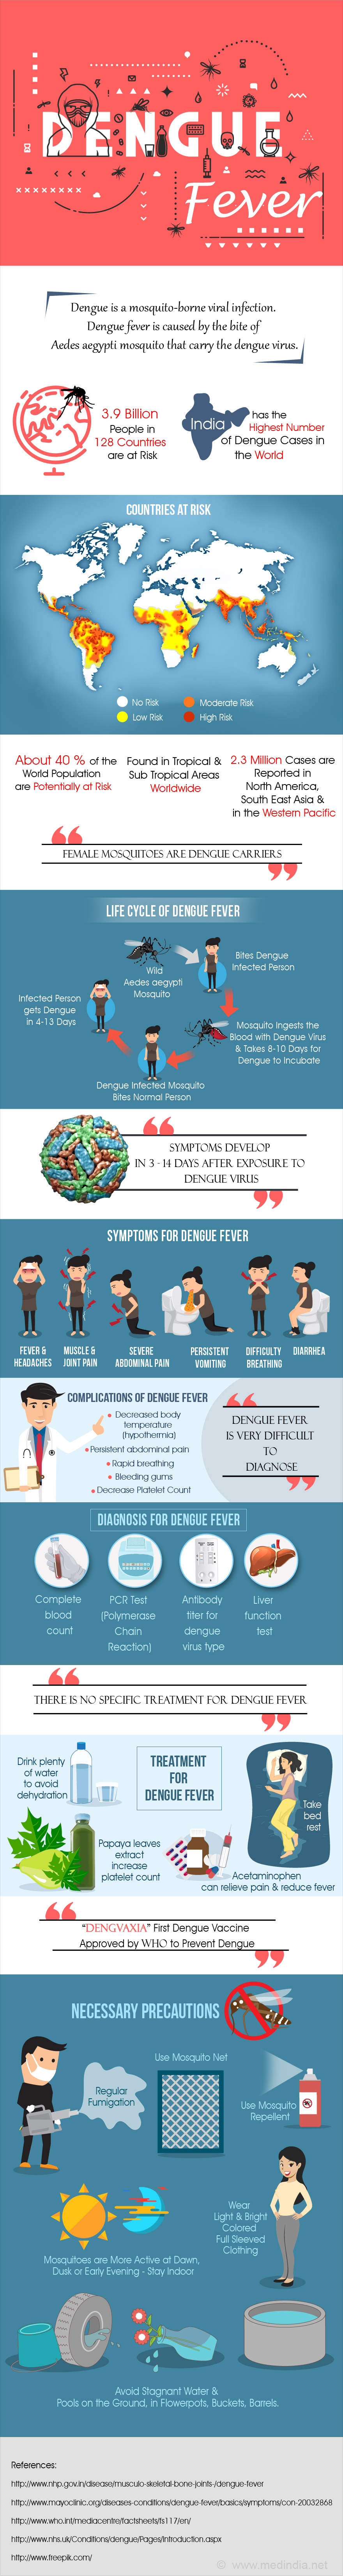 Dengue Fever - Infographic